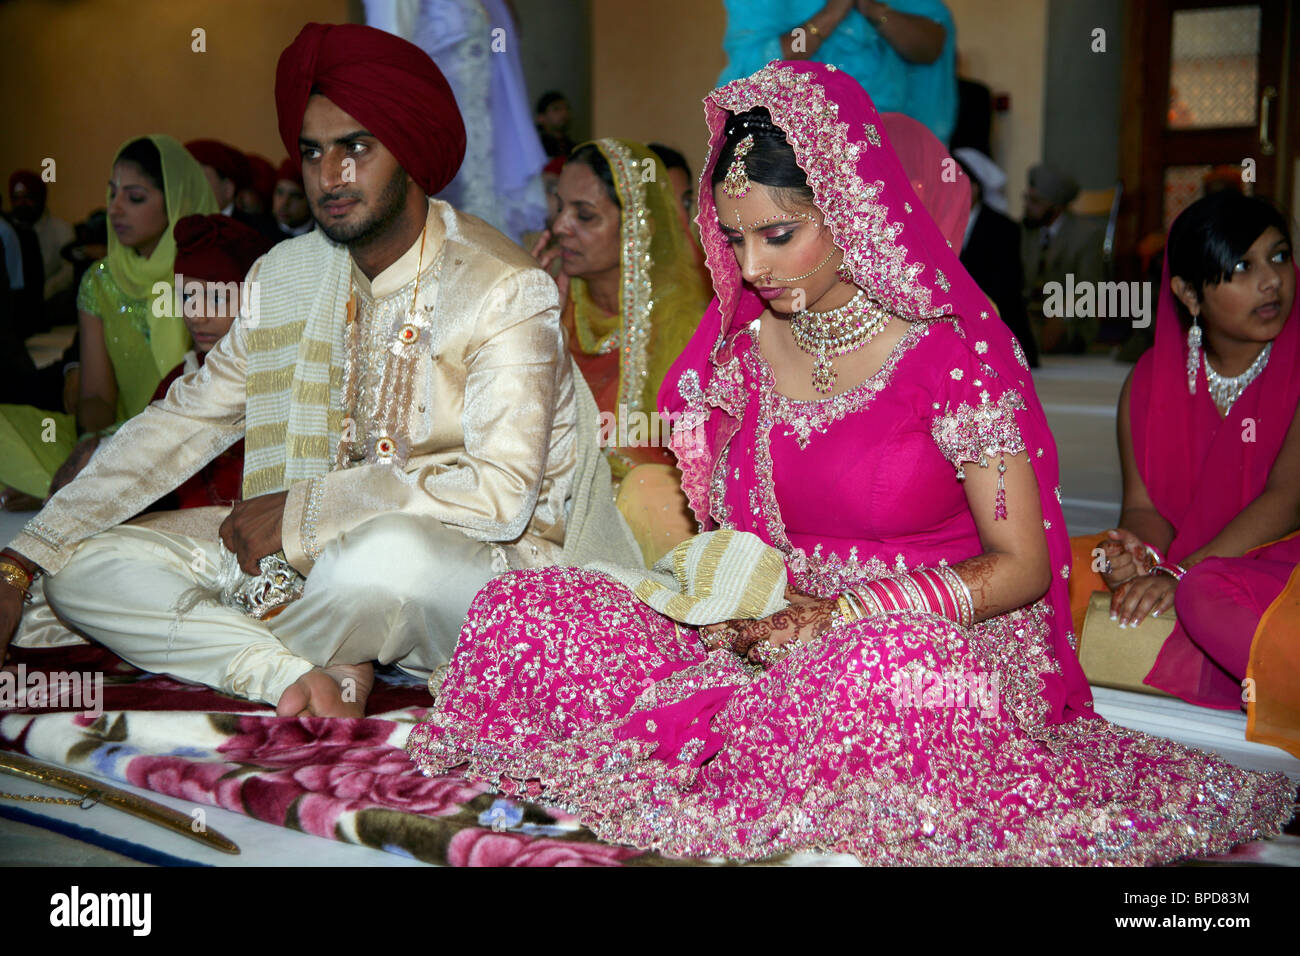 Sikh Wedding Stock Photos & Sikh Wedding Stock Images - Alamy